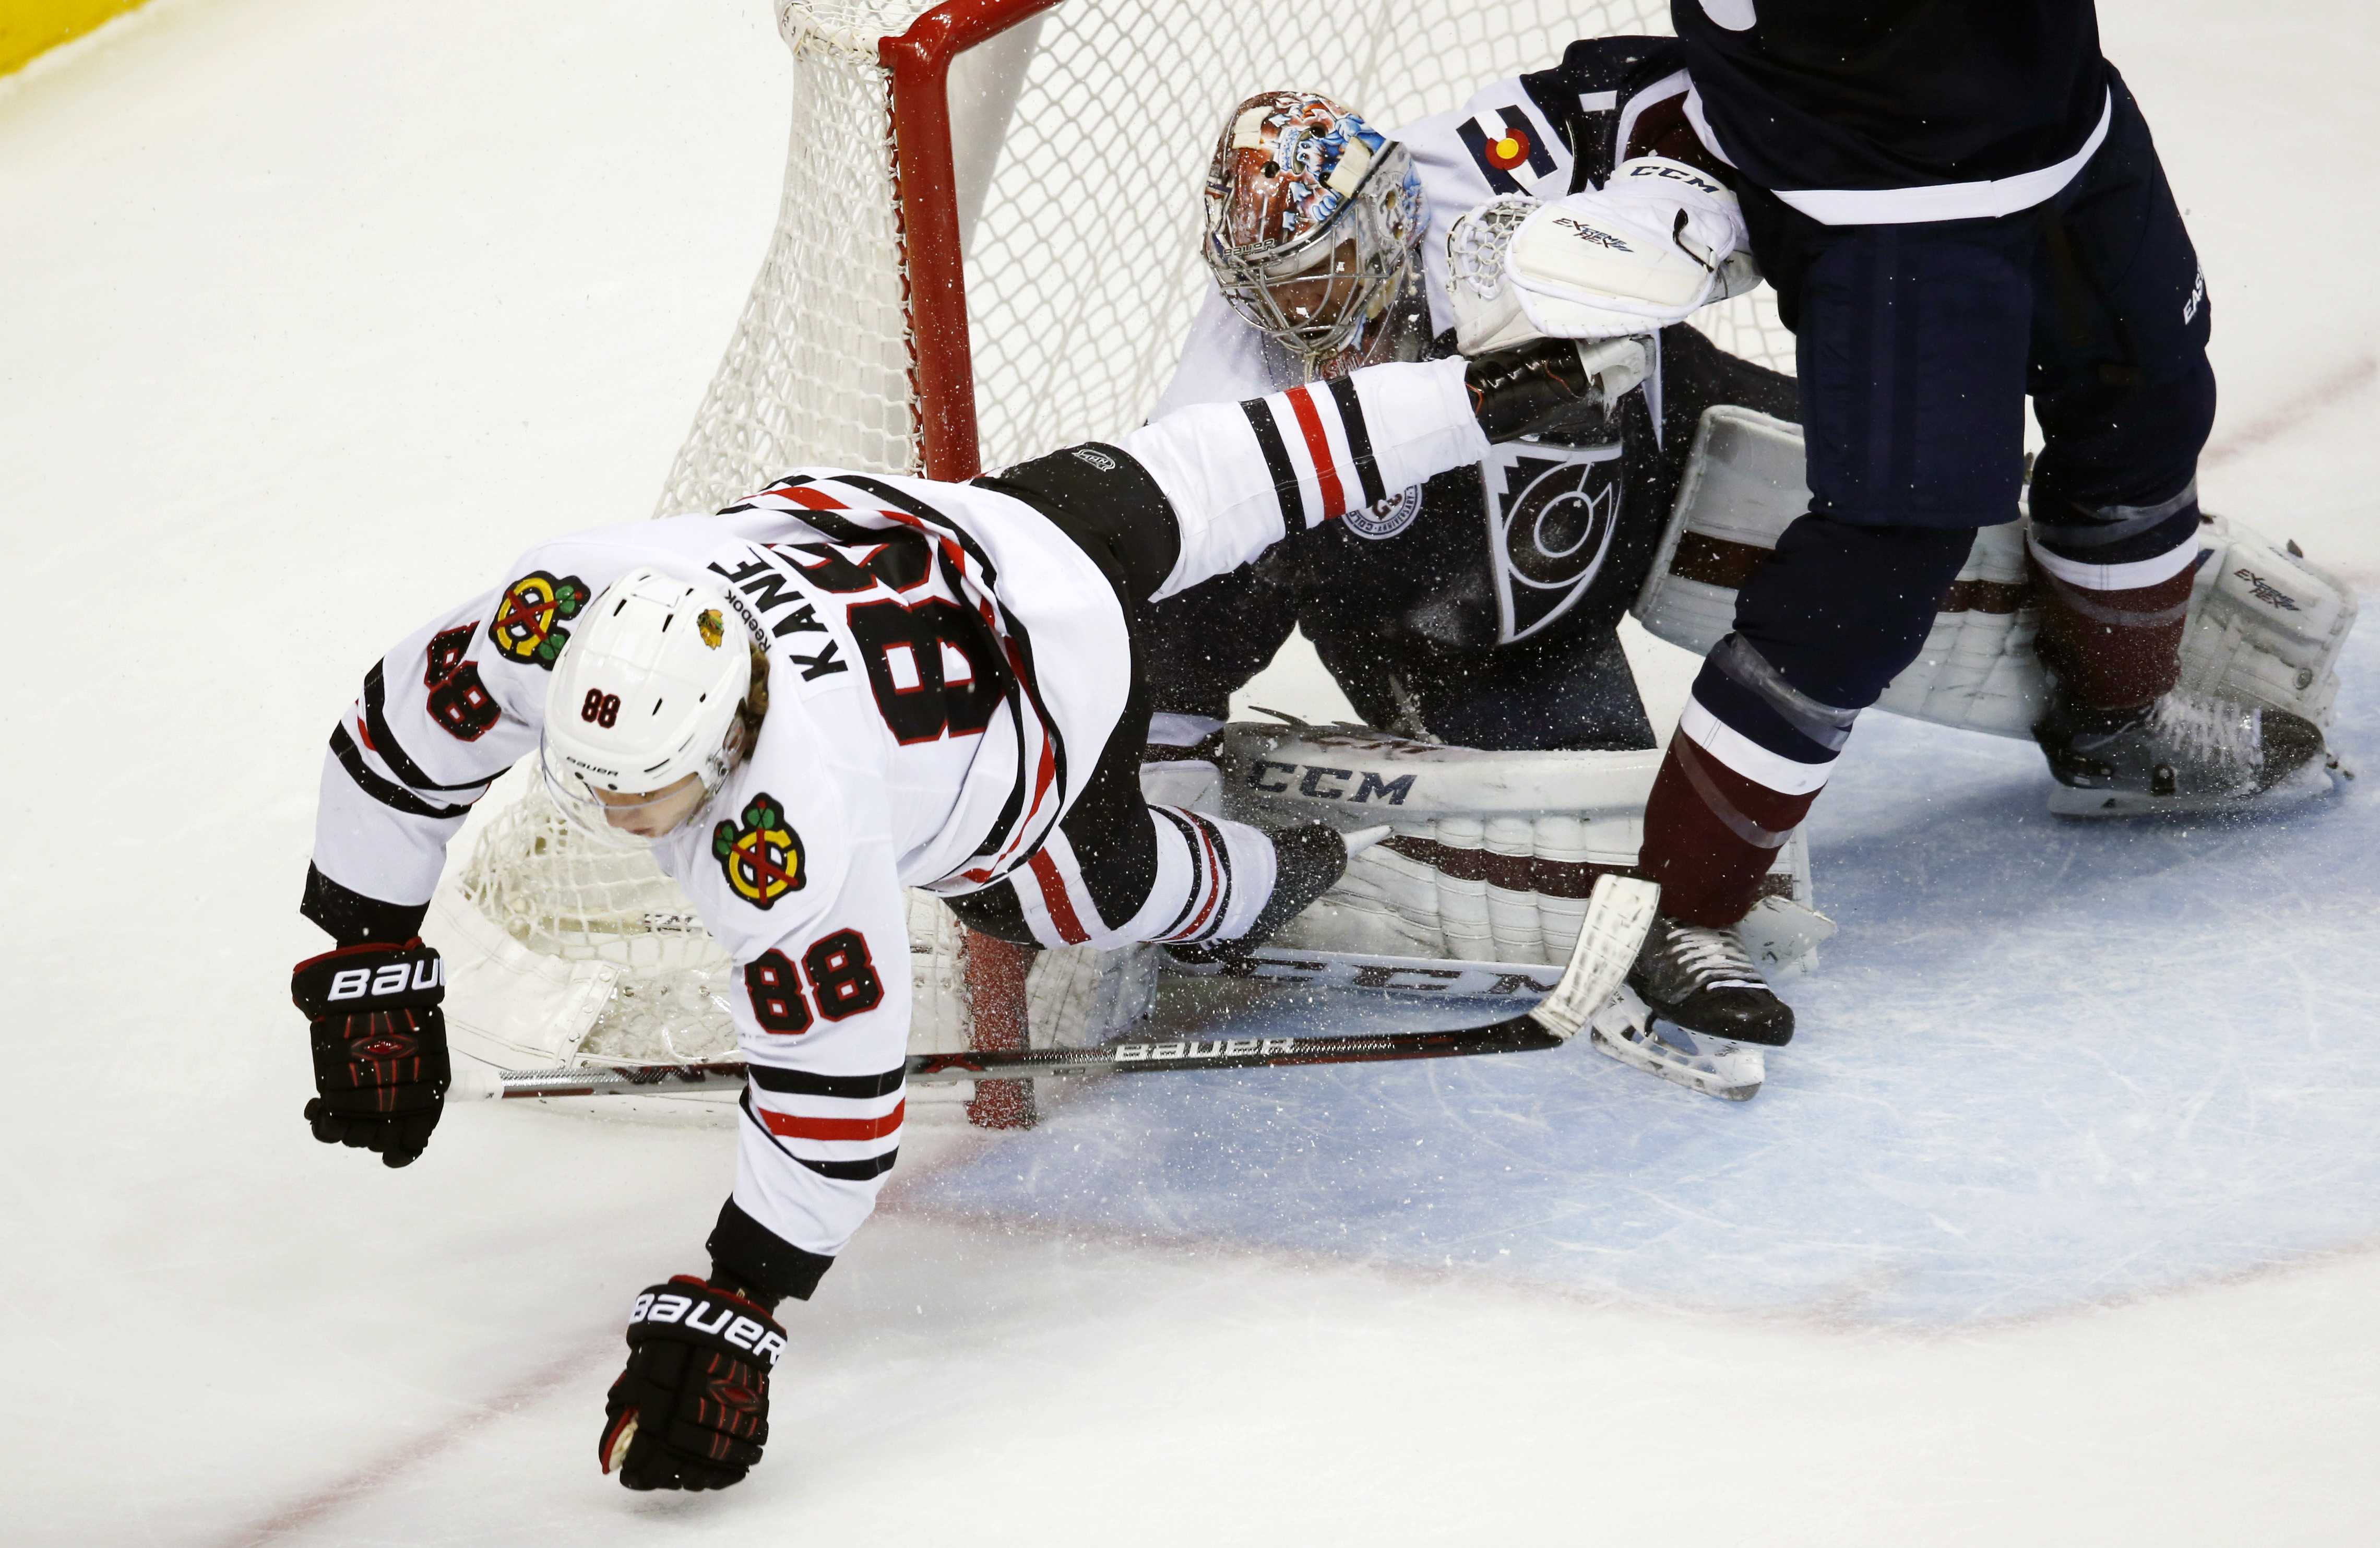 Chicago Blackhawks right wing Patrick Kane, left, careens off Colorado Avalanche goalie Semyon Varlamov, of Russia, after Varlamov stopped his shot in overtime of an NHL hockey game Thursday, Dec. 31, 2015, in Denver. Chicago won 4-3. (AP Photo/David Zalu